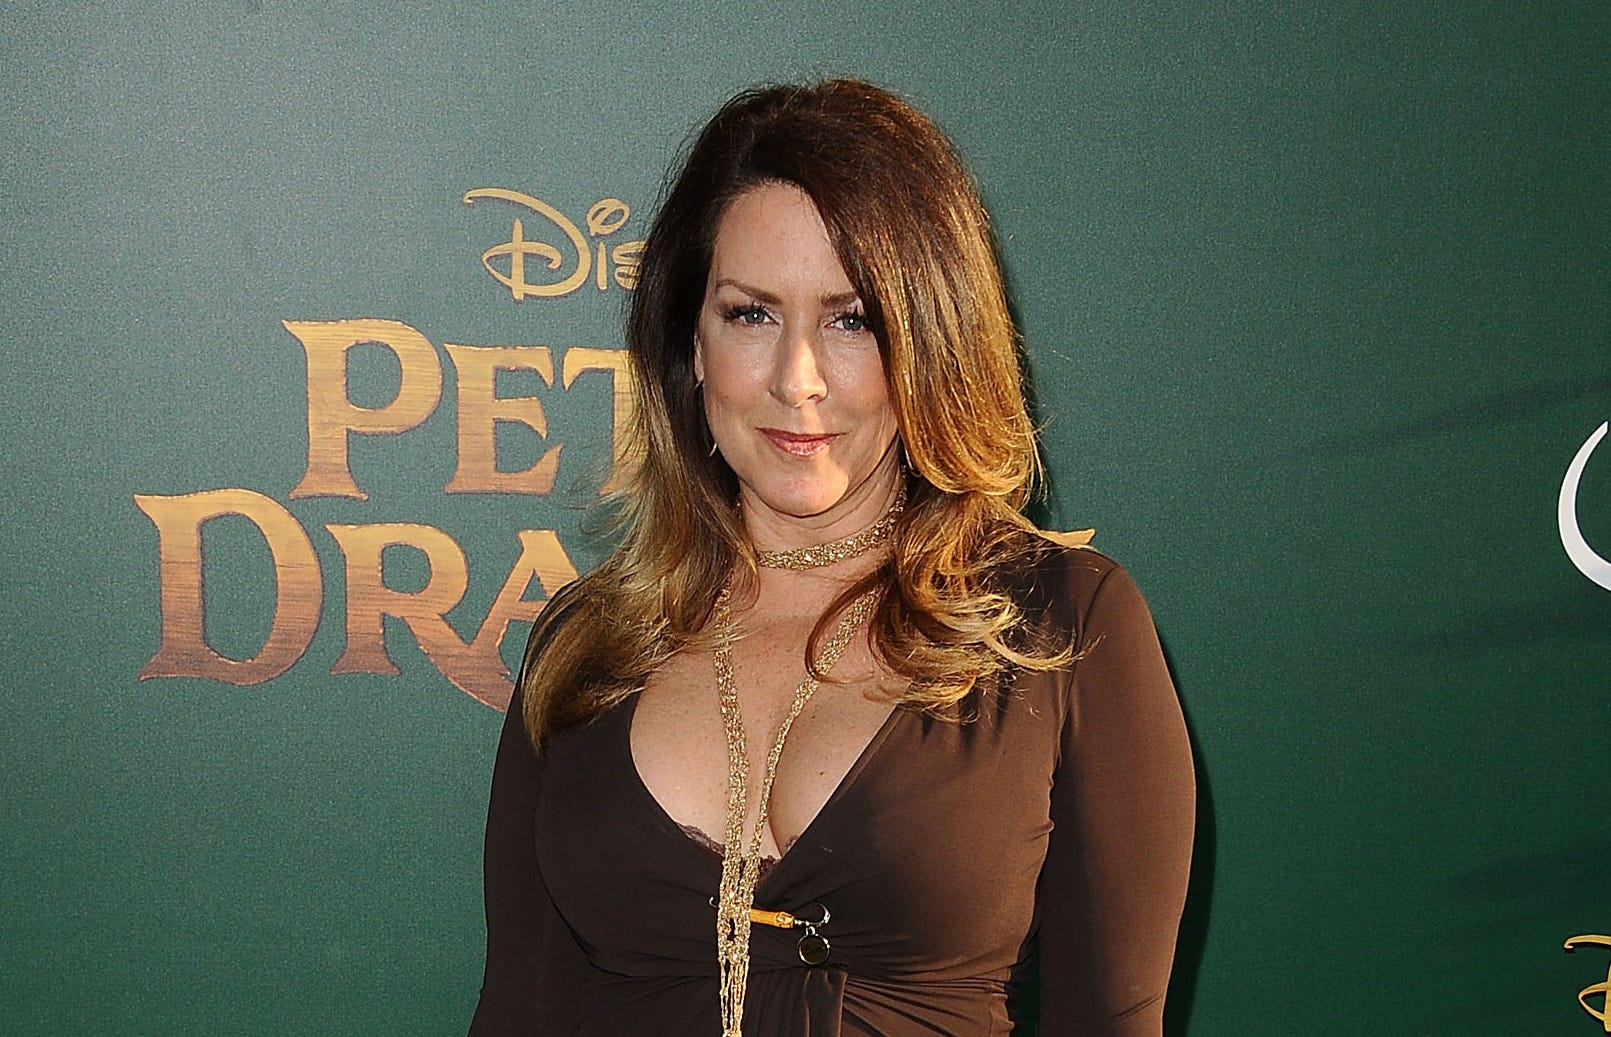 A 'conflicted' Joely Fisher offers former co-star Felicity Huffman prayers amid scandal